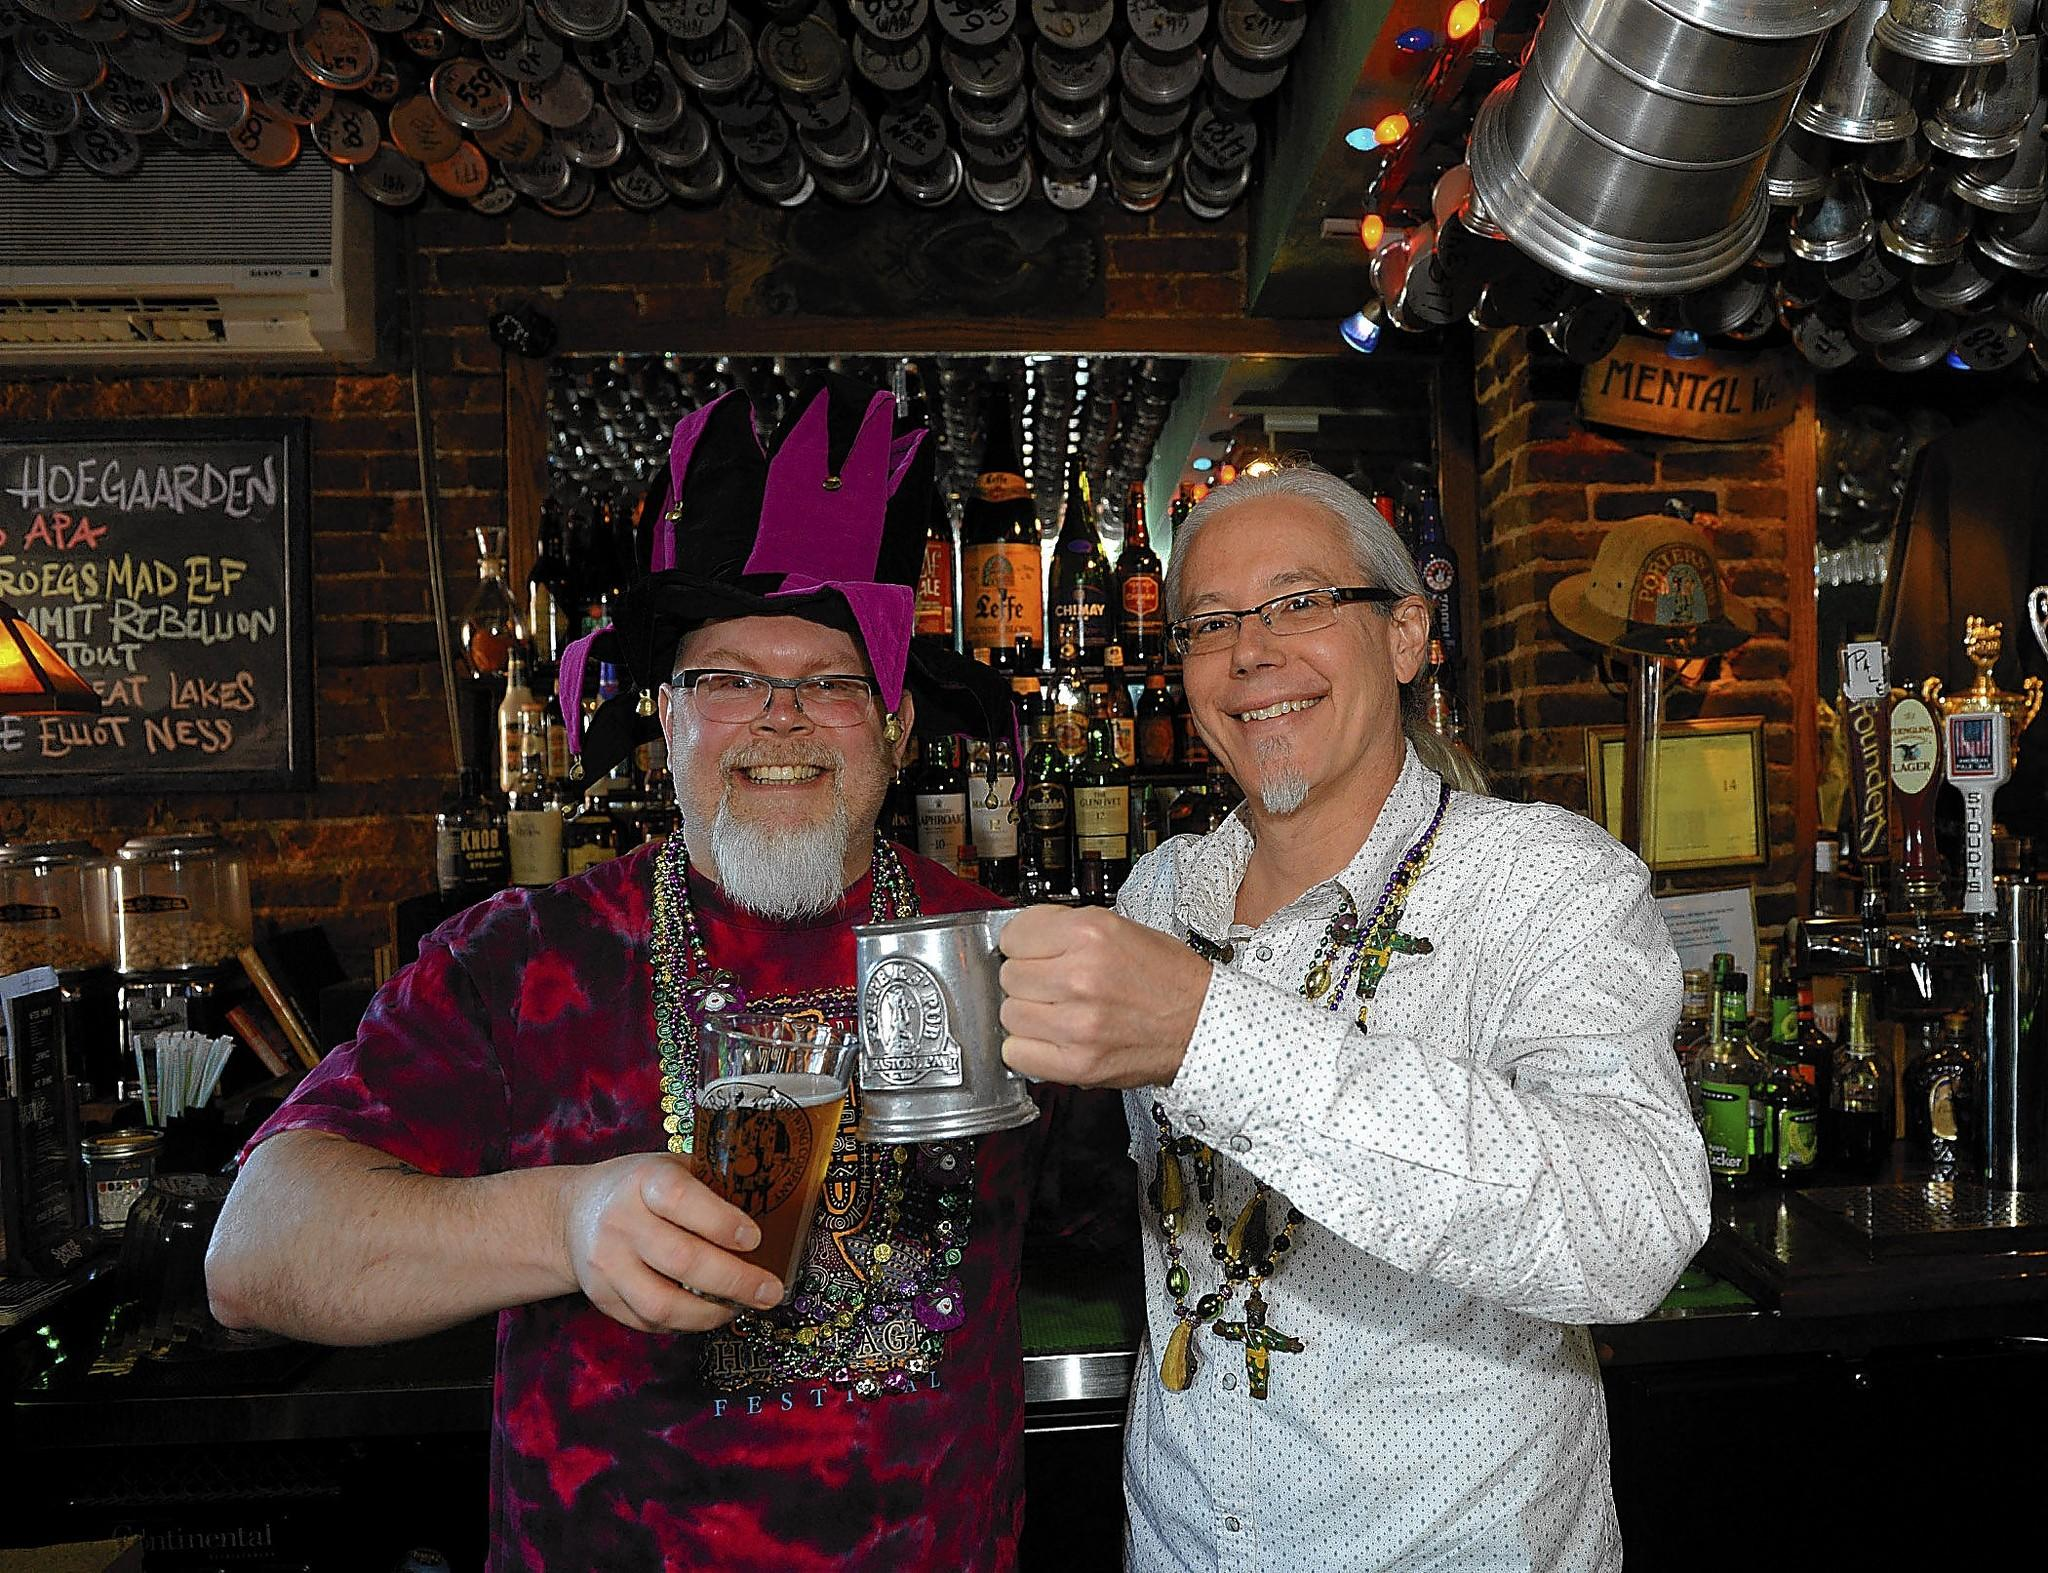 Troy Reynard, co-owner of Two Rivers Brewing Co. iin Easton (left) and Larry Porter co-owner of the bars Porters' Pub and Black & Blue, get ready for Lehigh Valley Beer Week.